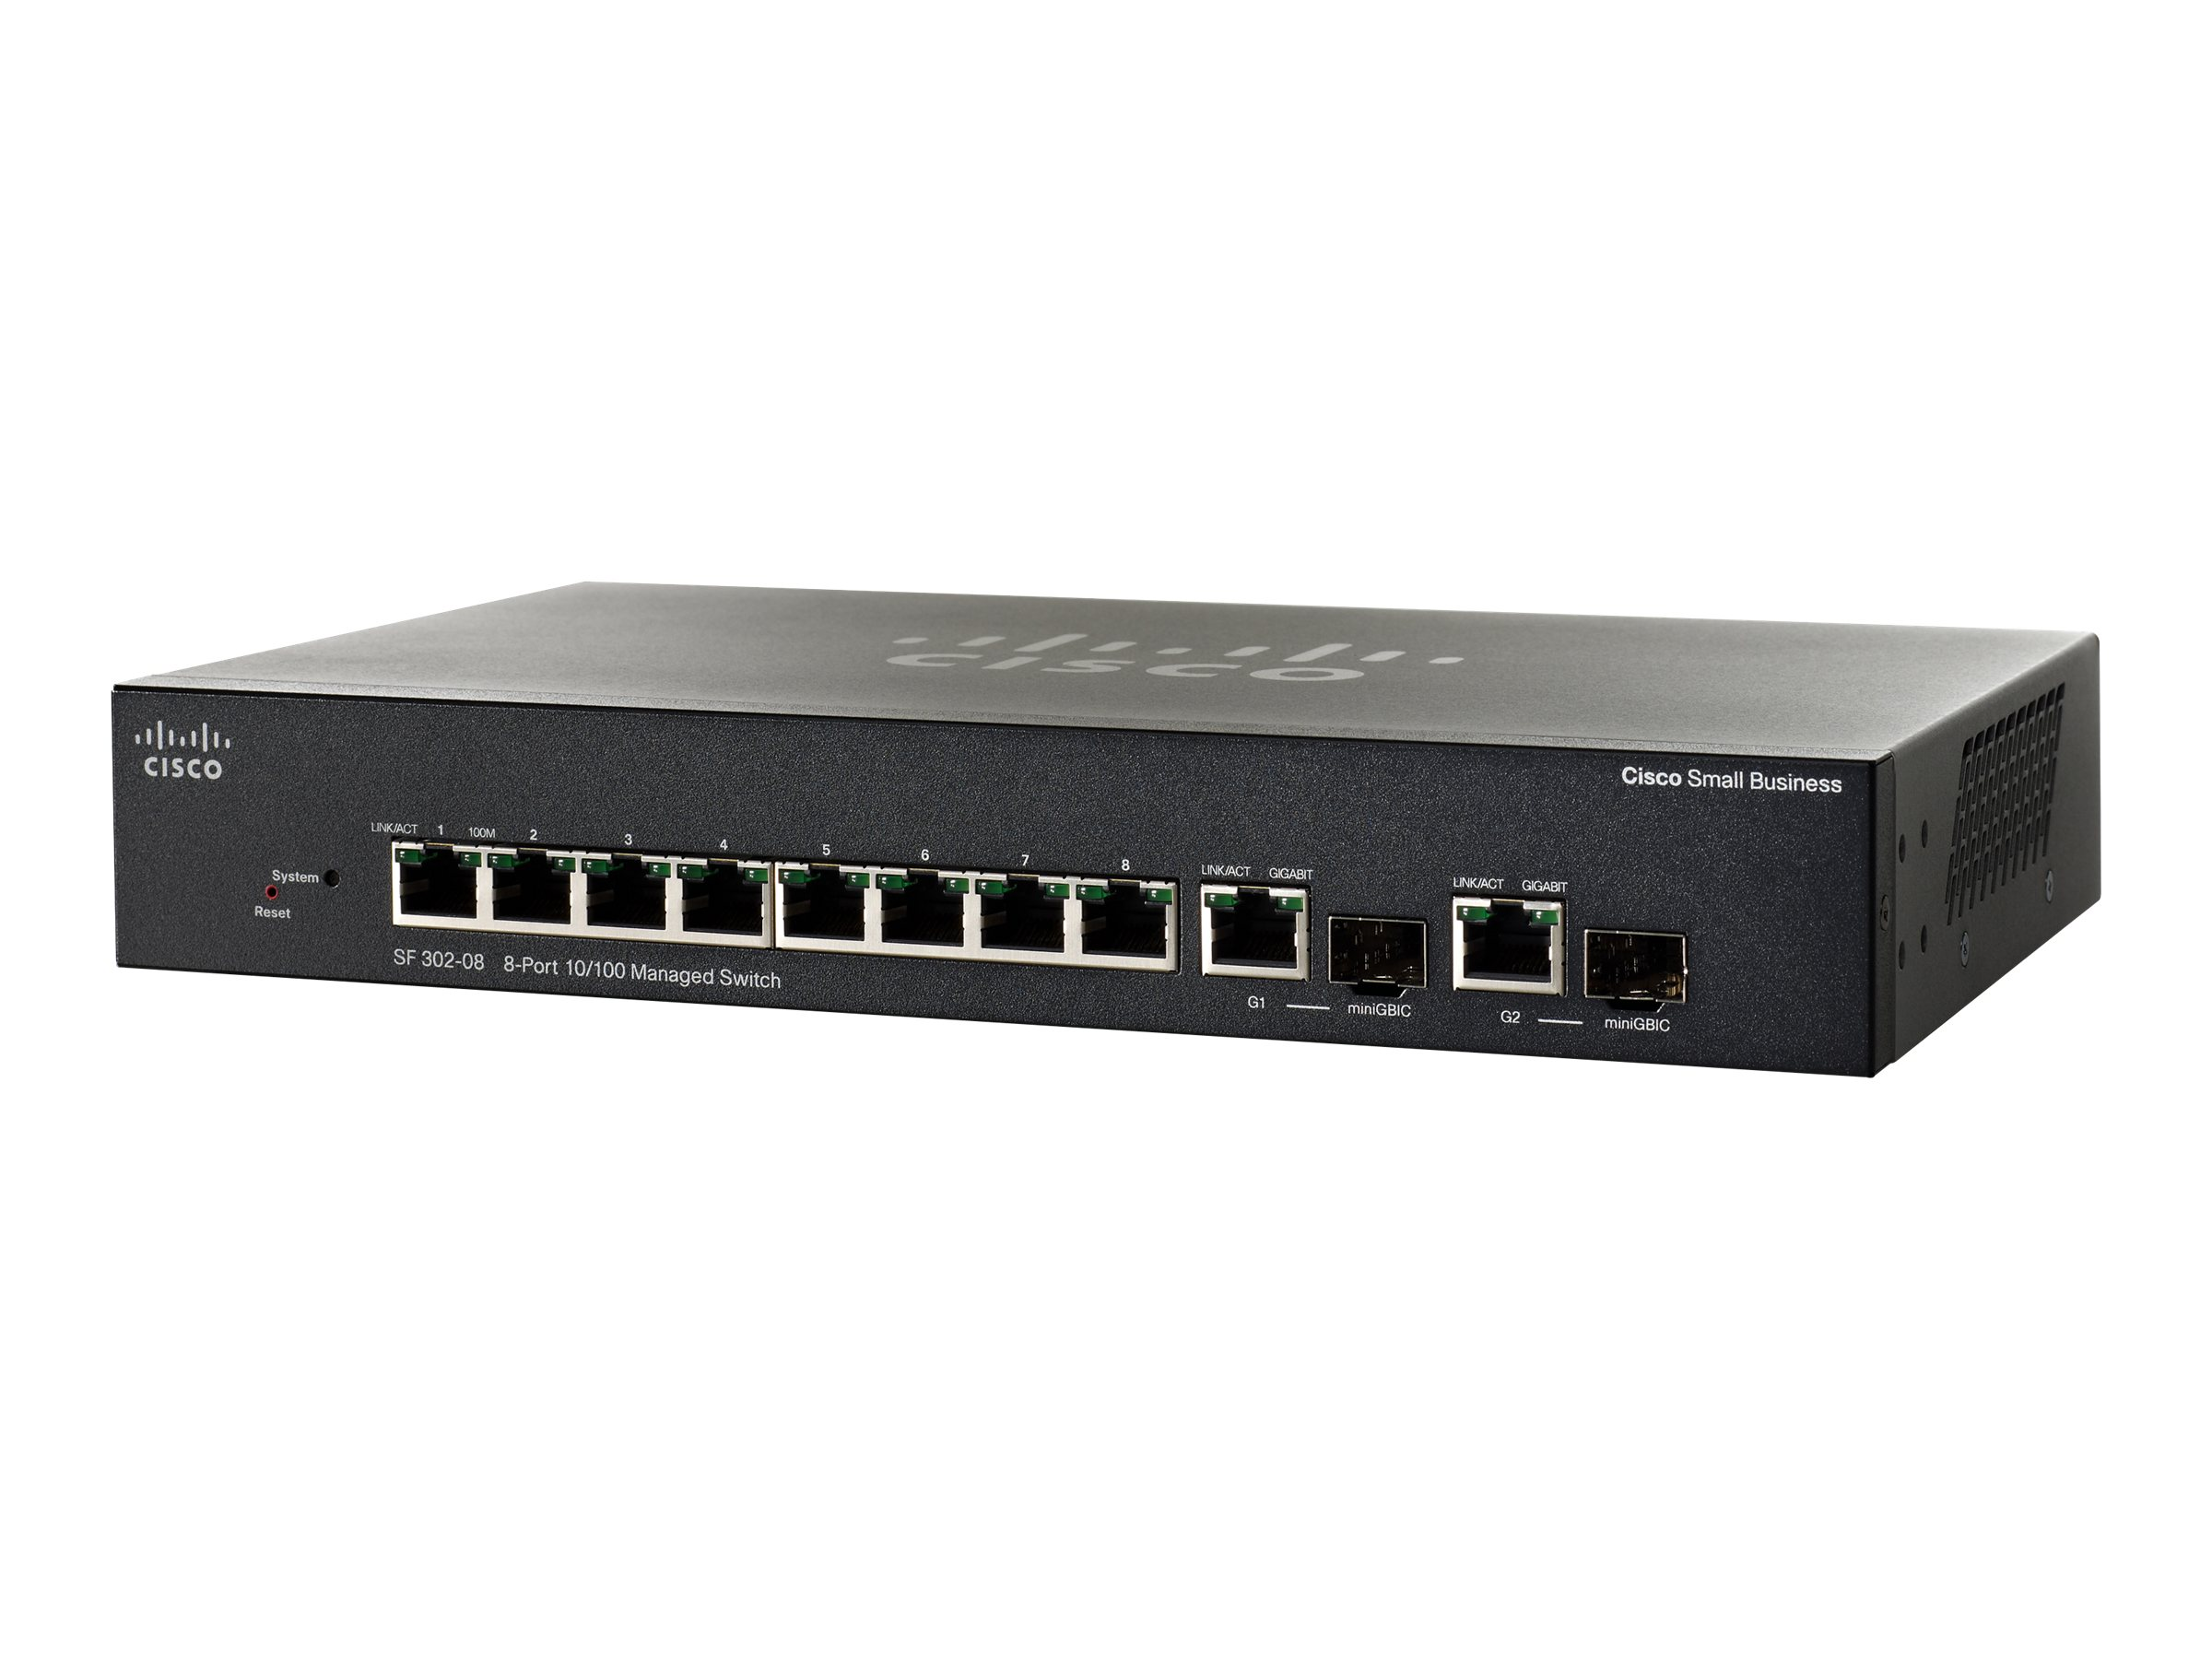 Cisco Small Business SF302-08 - Switch - L3 - verwaltet - 8 x 10/100 + 2 x Kombi-Gigabit-SFP - Desktop